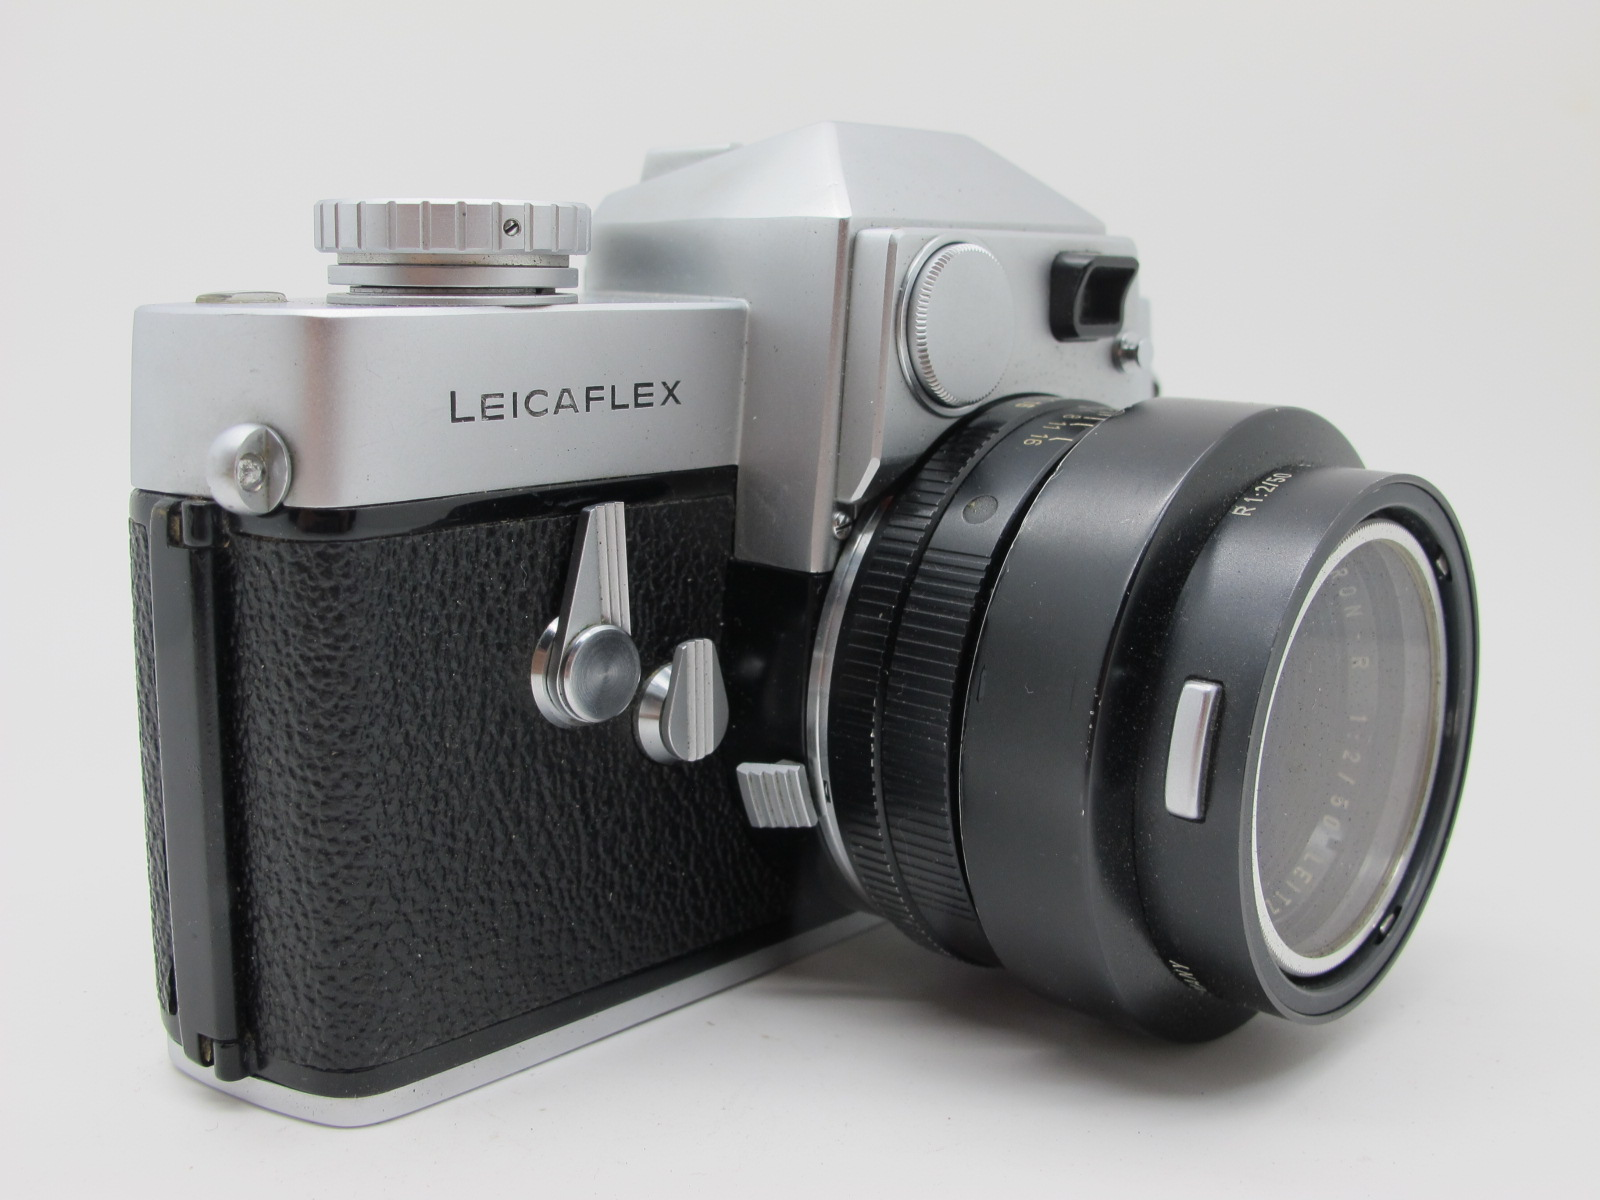 Leicaflex Manual Camera, with Leitz Wetzlar Summicron - R 1:2/50 lens in a black case. - Image 4 of 8